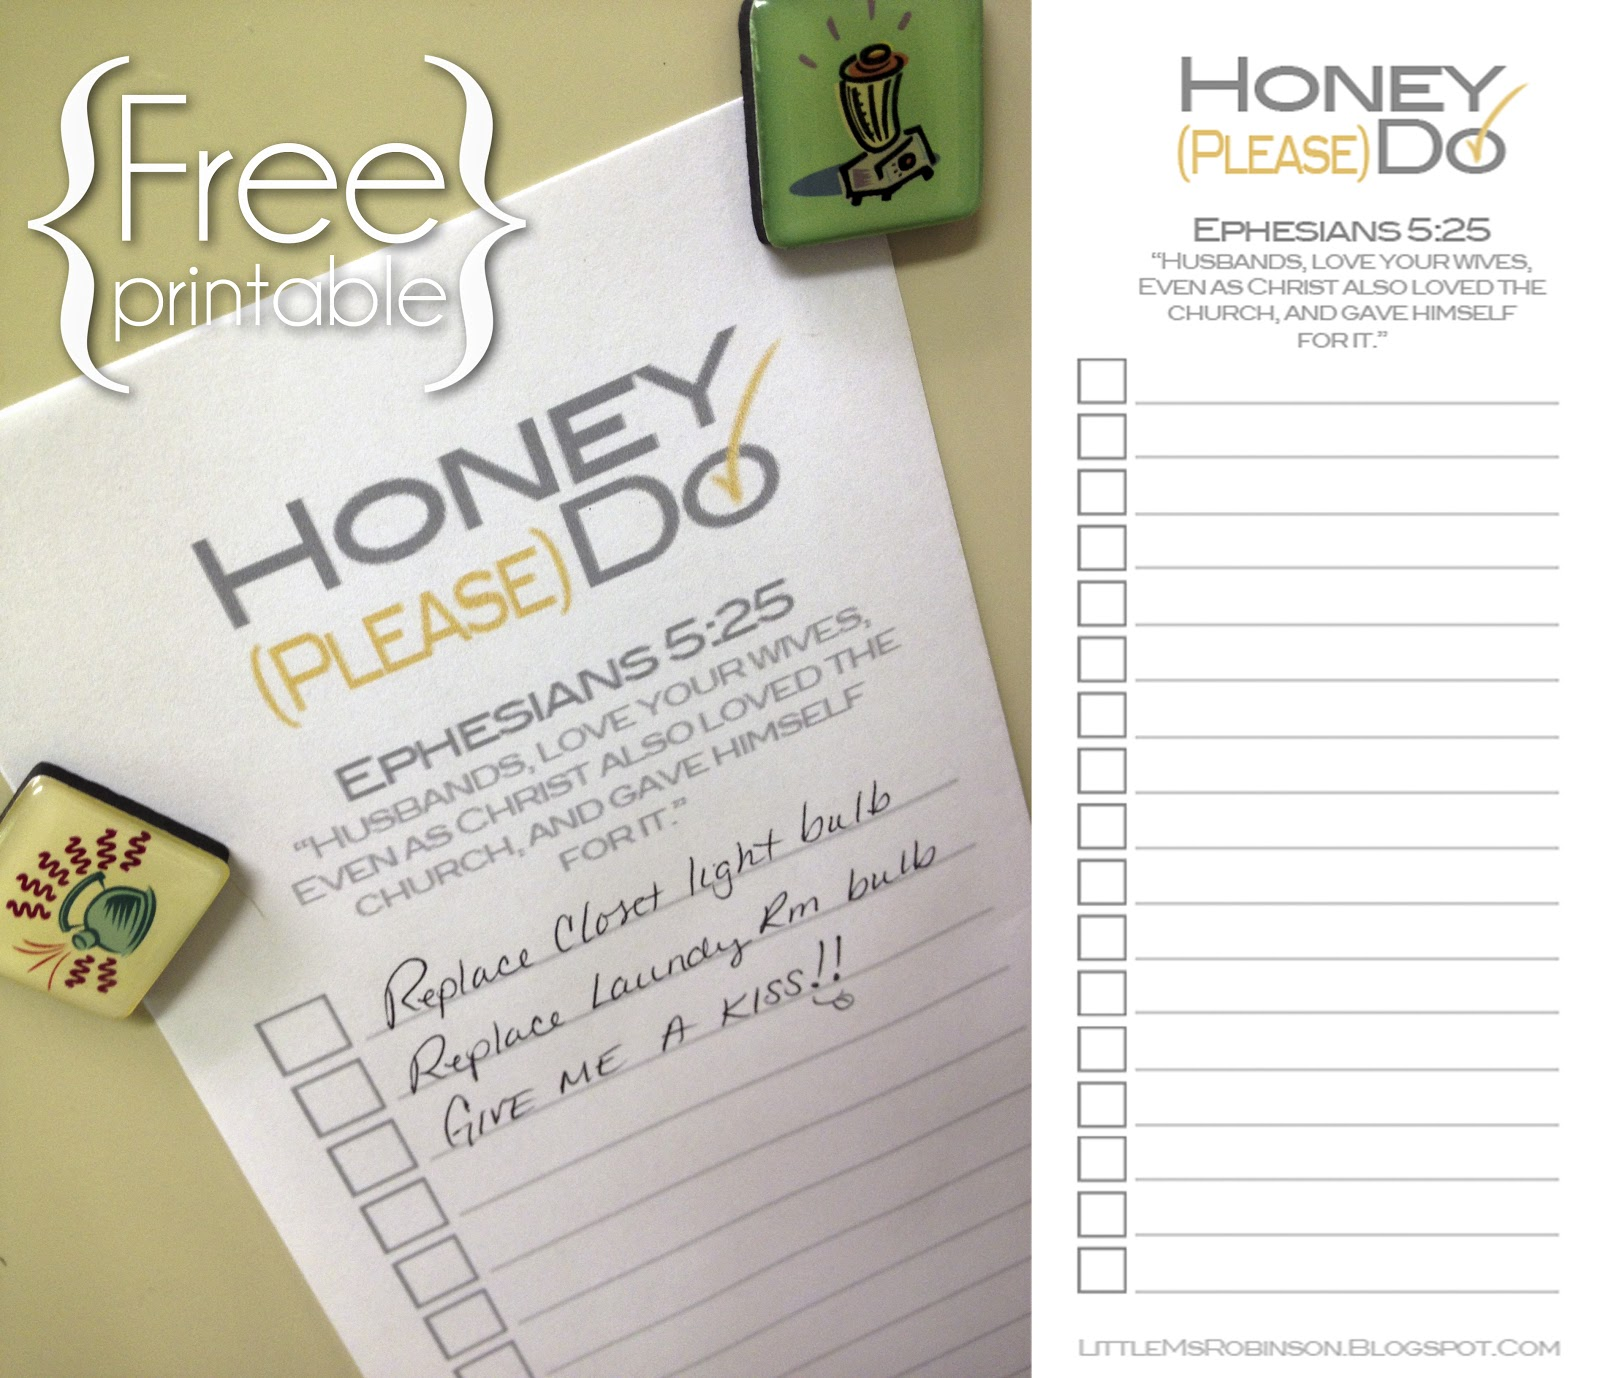 photograph relating to Honey Do List Printable named For The Take pleasure in Of Tuesdays: Printable Checklist for On your own Your Honey